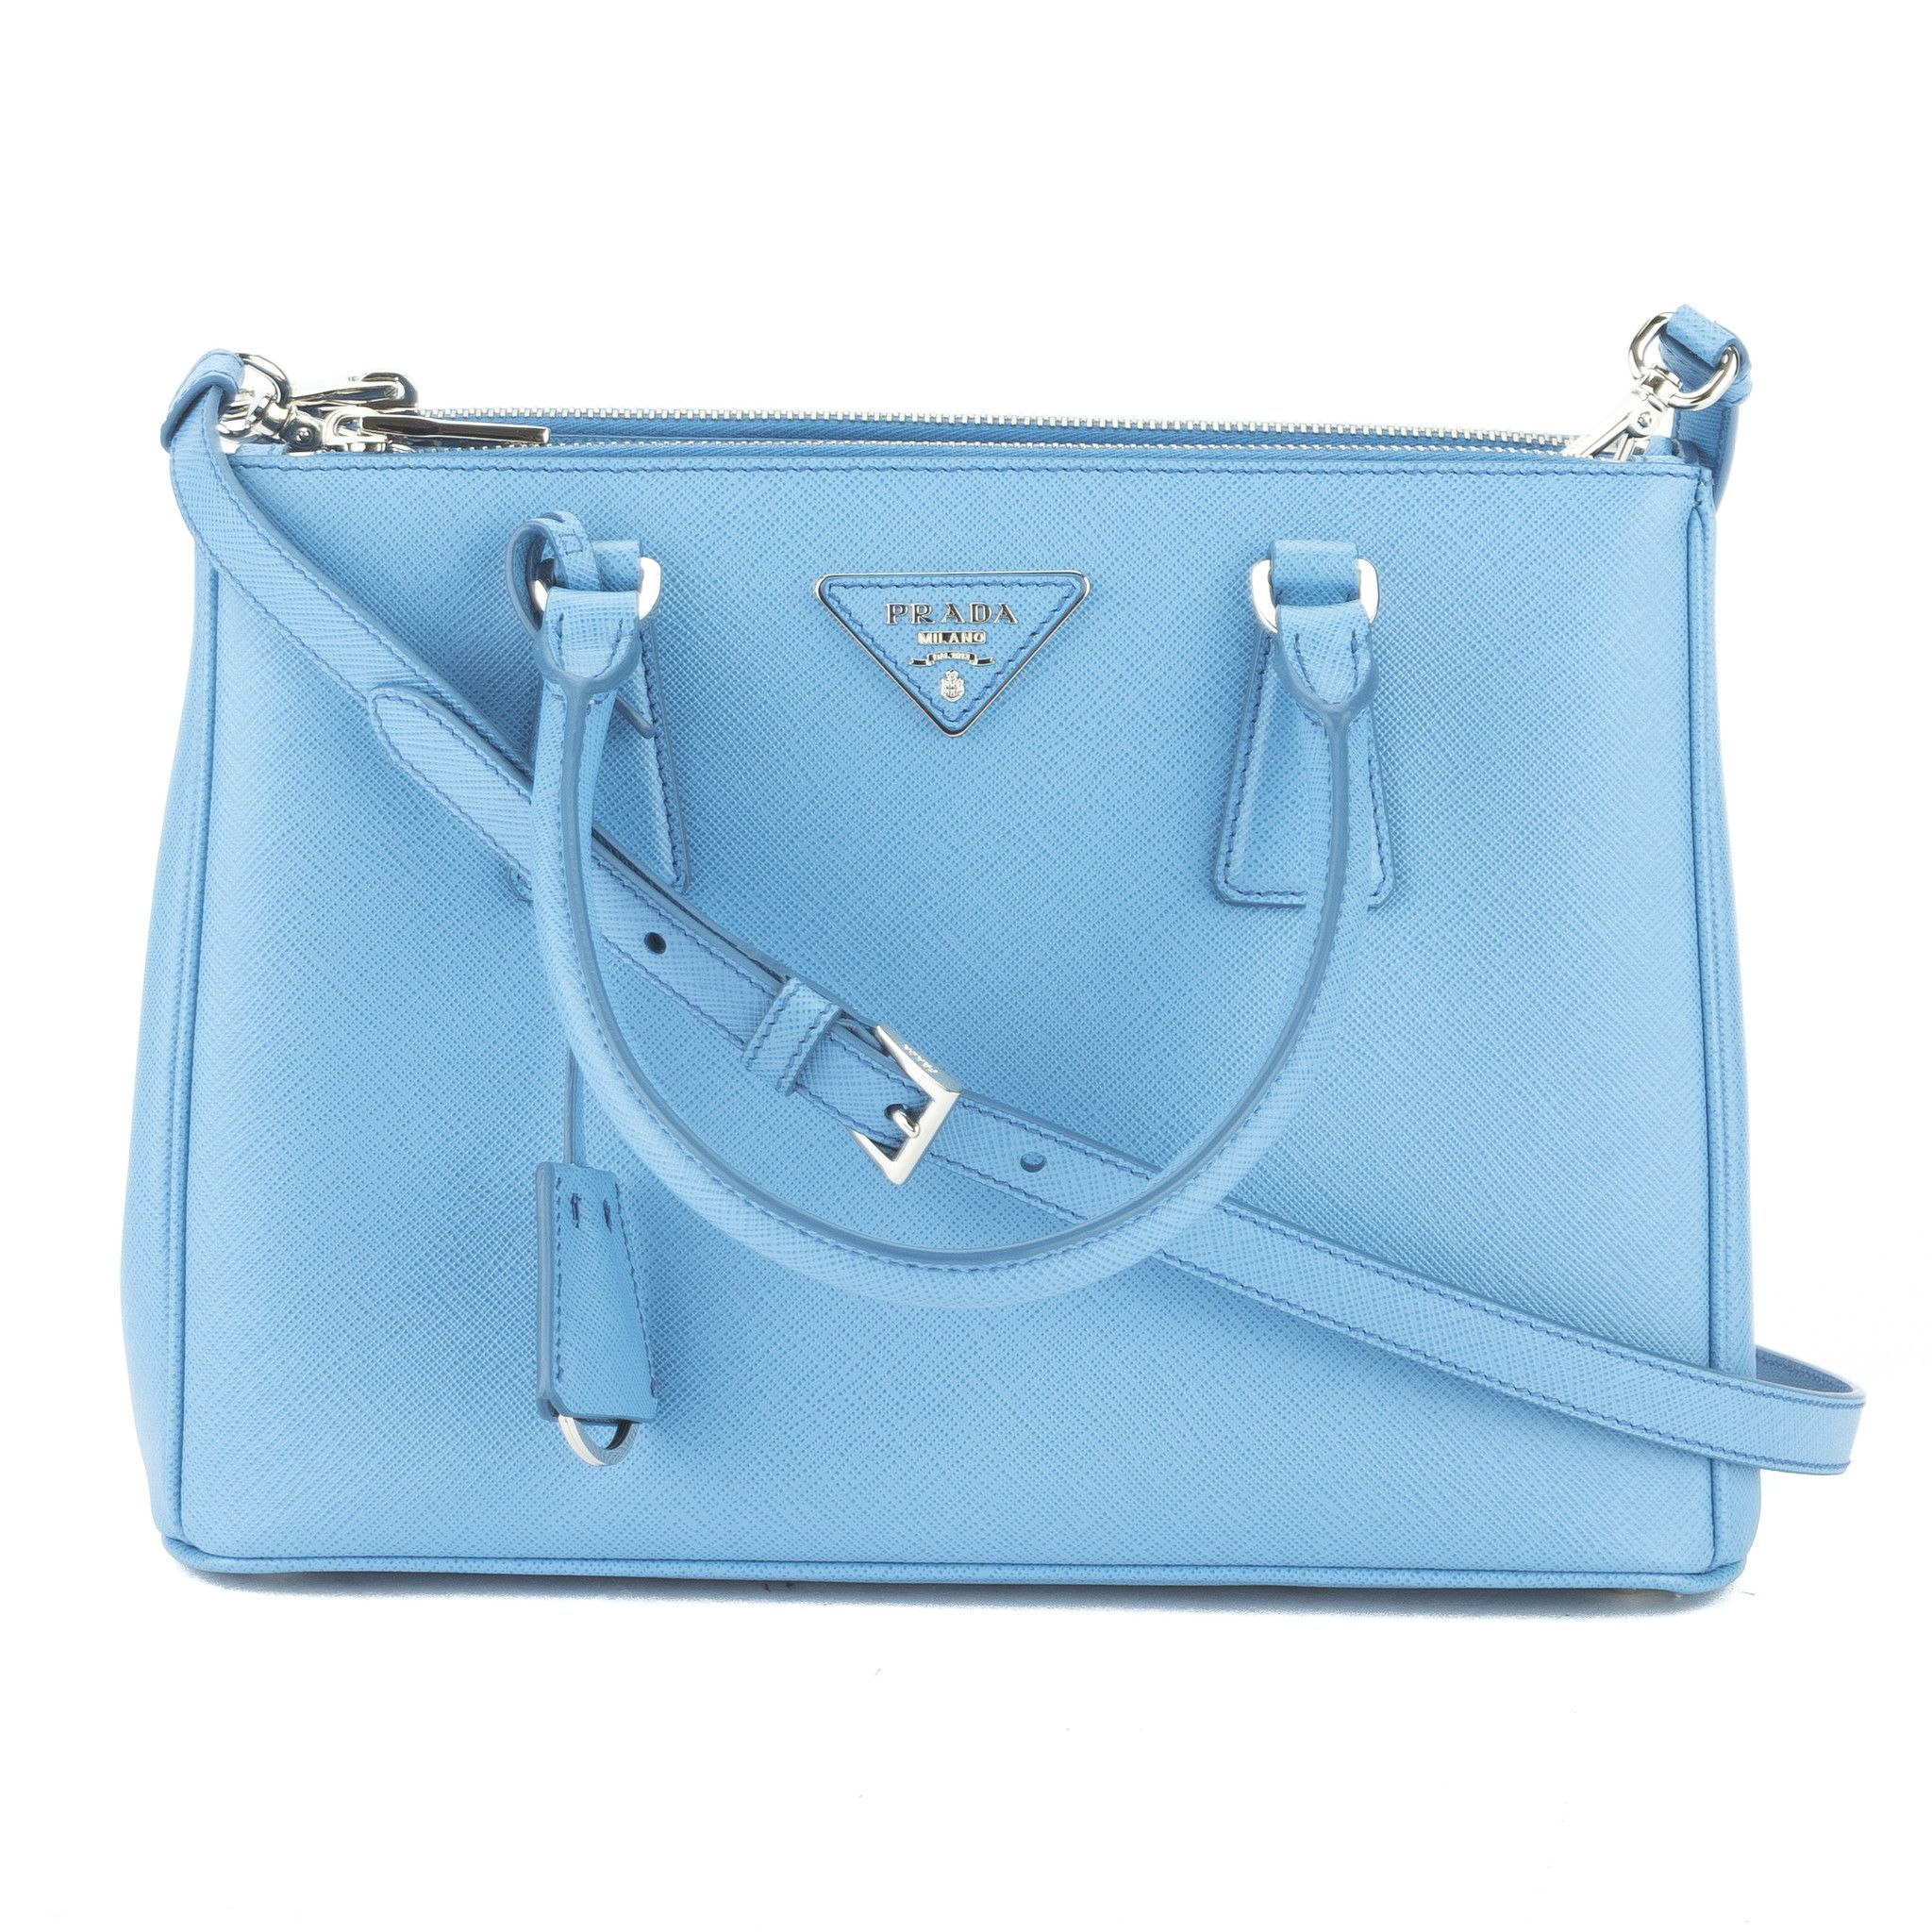 bc4d46d3075e ... coupon code this is an authentic prada saffiano lux mini galleria bag  in a beautiful cobalt